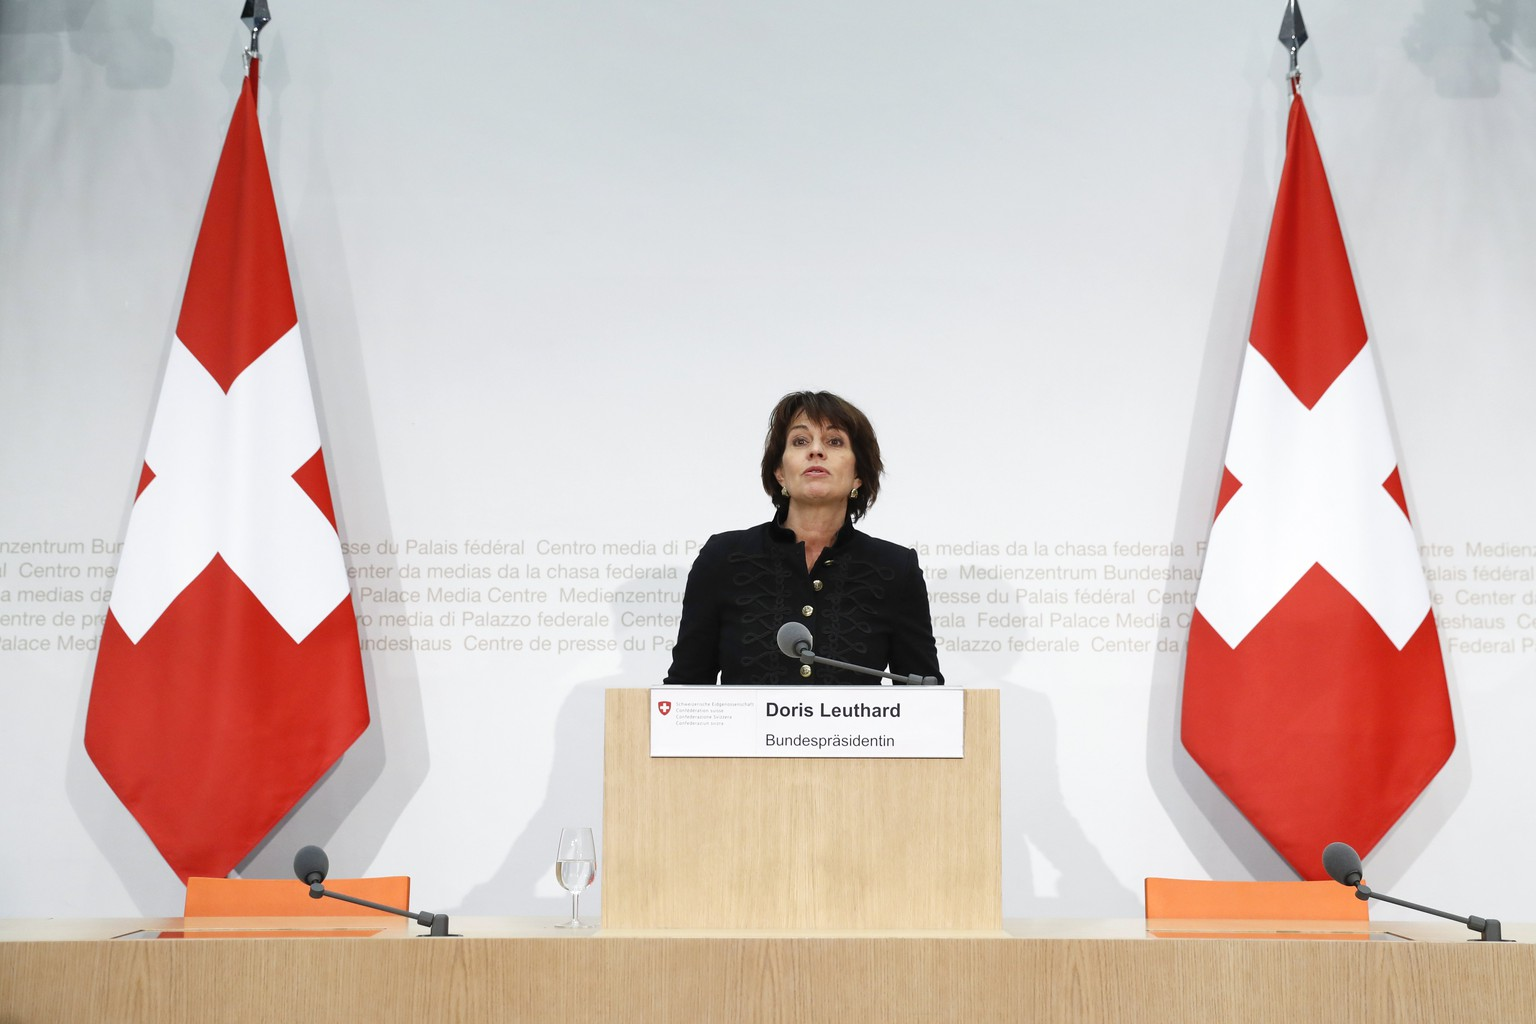 epa06401507 Swiss Federal President Doris Leuthard speaks during a press conference in Bern, Switzerland, 21 December 2017. The European Commission approved the recognition of equivalence for the Swiss Stock Exchange, but only for one year. In response, the Swiss Federal Council is considerig the abolition of the stamp tax in order to strengthen the Swiss stock market.  EPA/PETER KLAUNZER